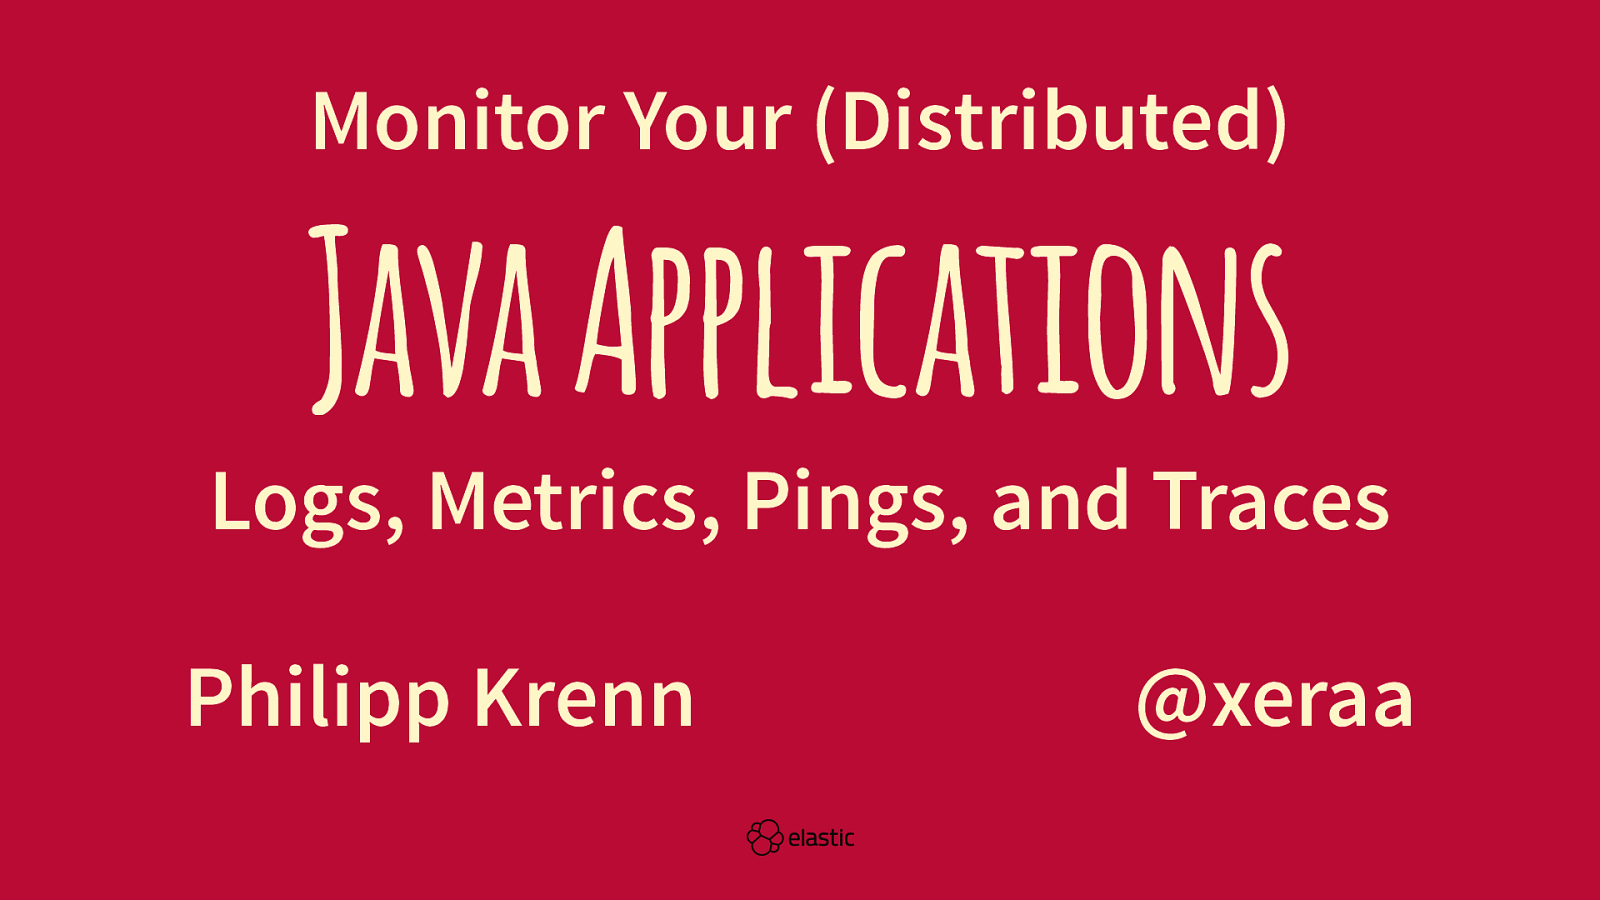 Monitor Your (Distributed) Java Applications: Logs, Metrics, Pings, and Traces